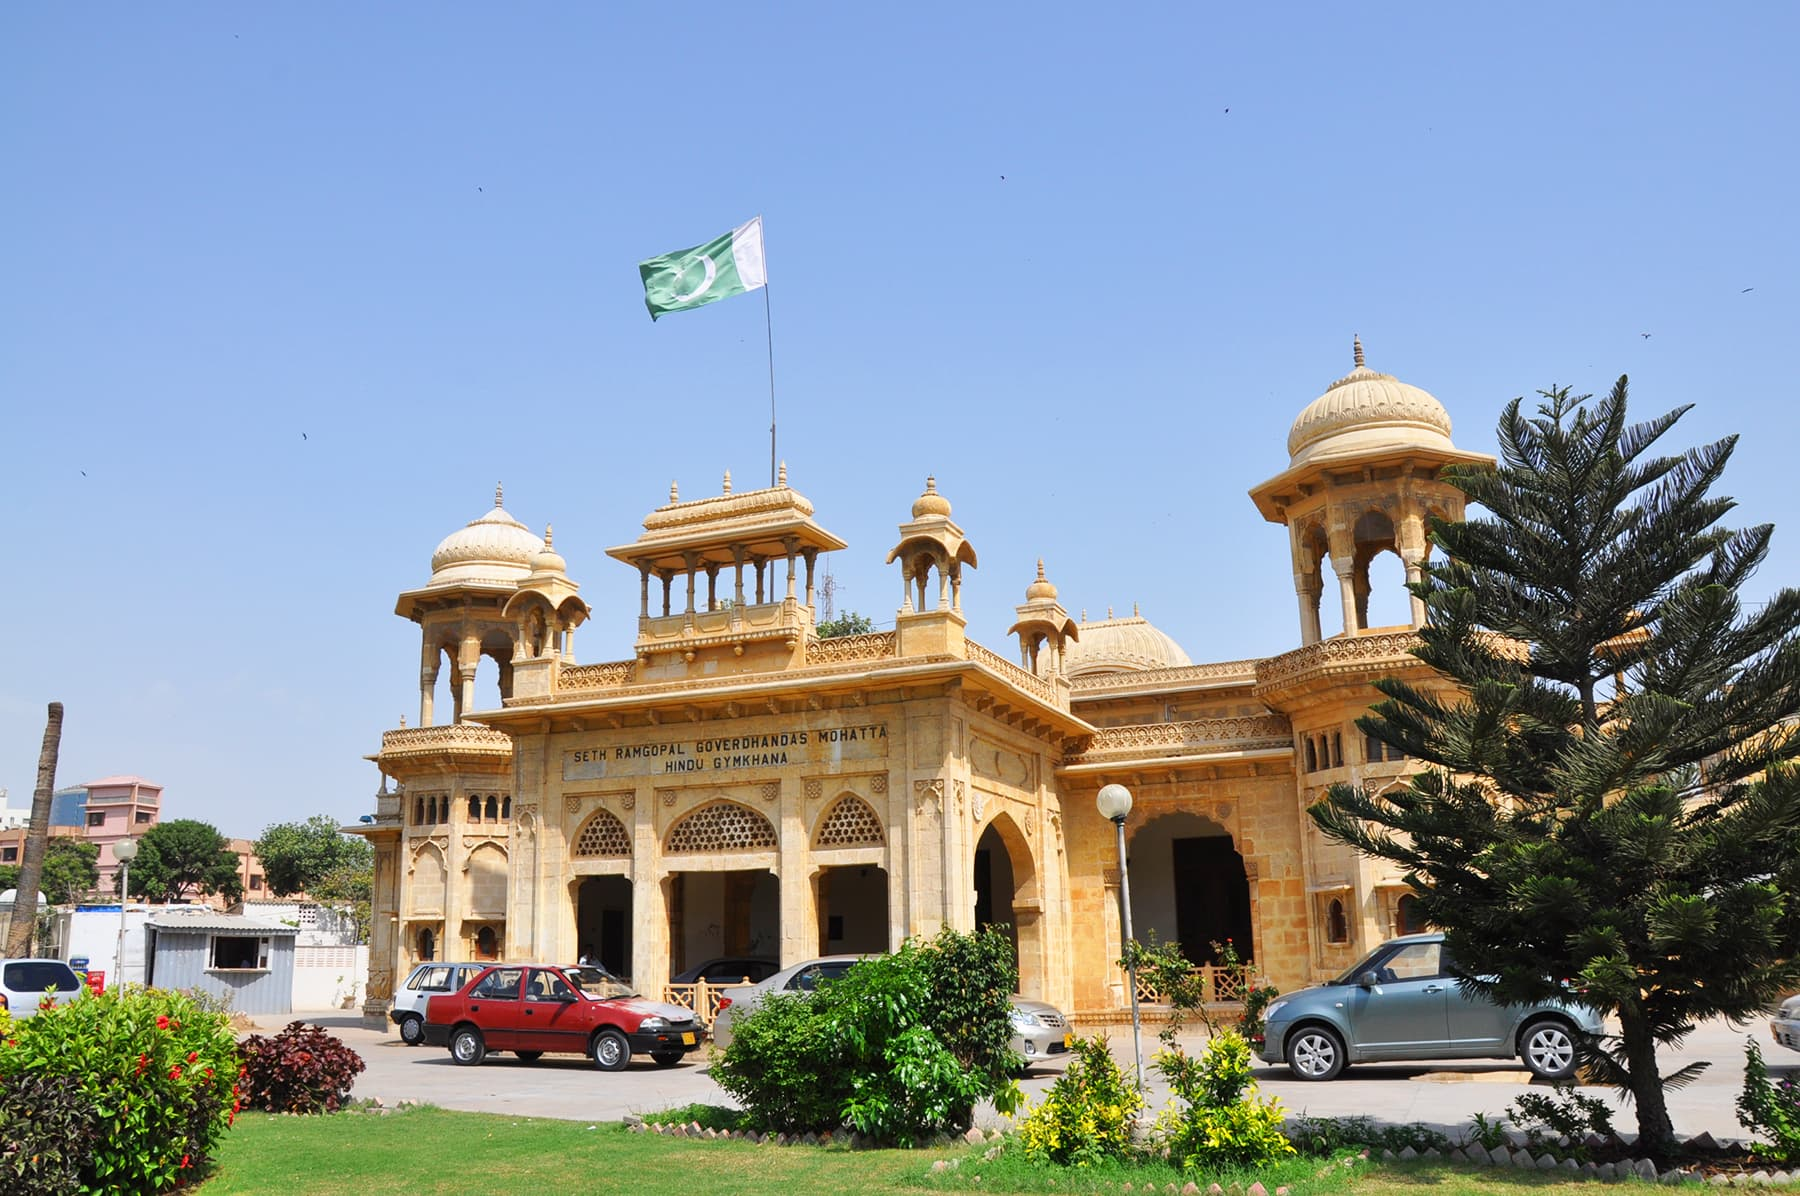 The credit goes to Napa for bringing the Hindu Gymkhana building back in public sphere.